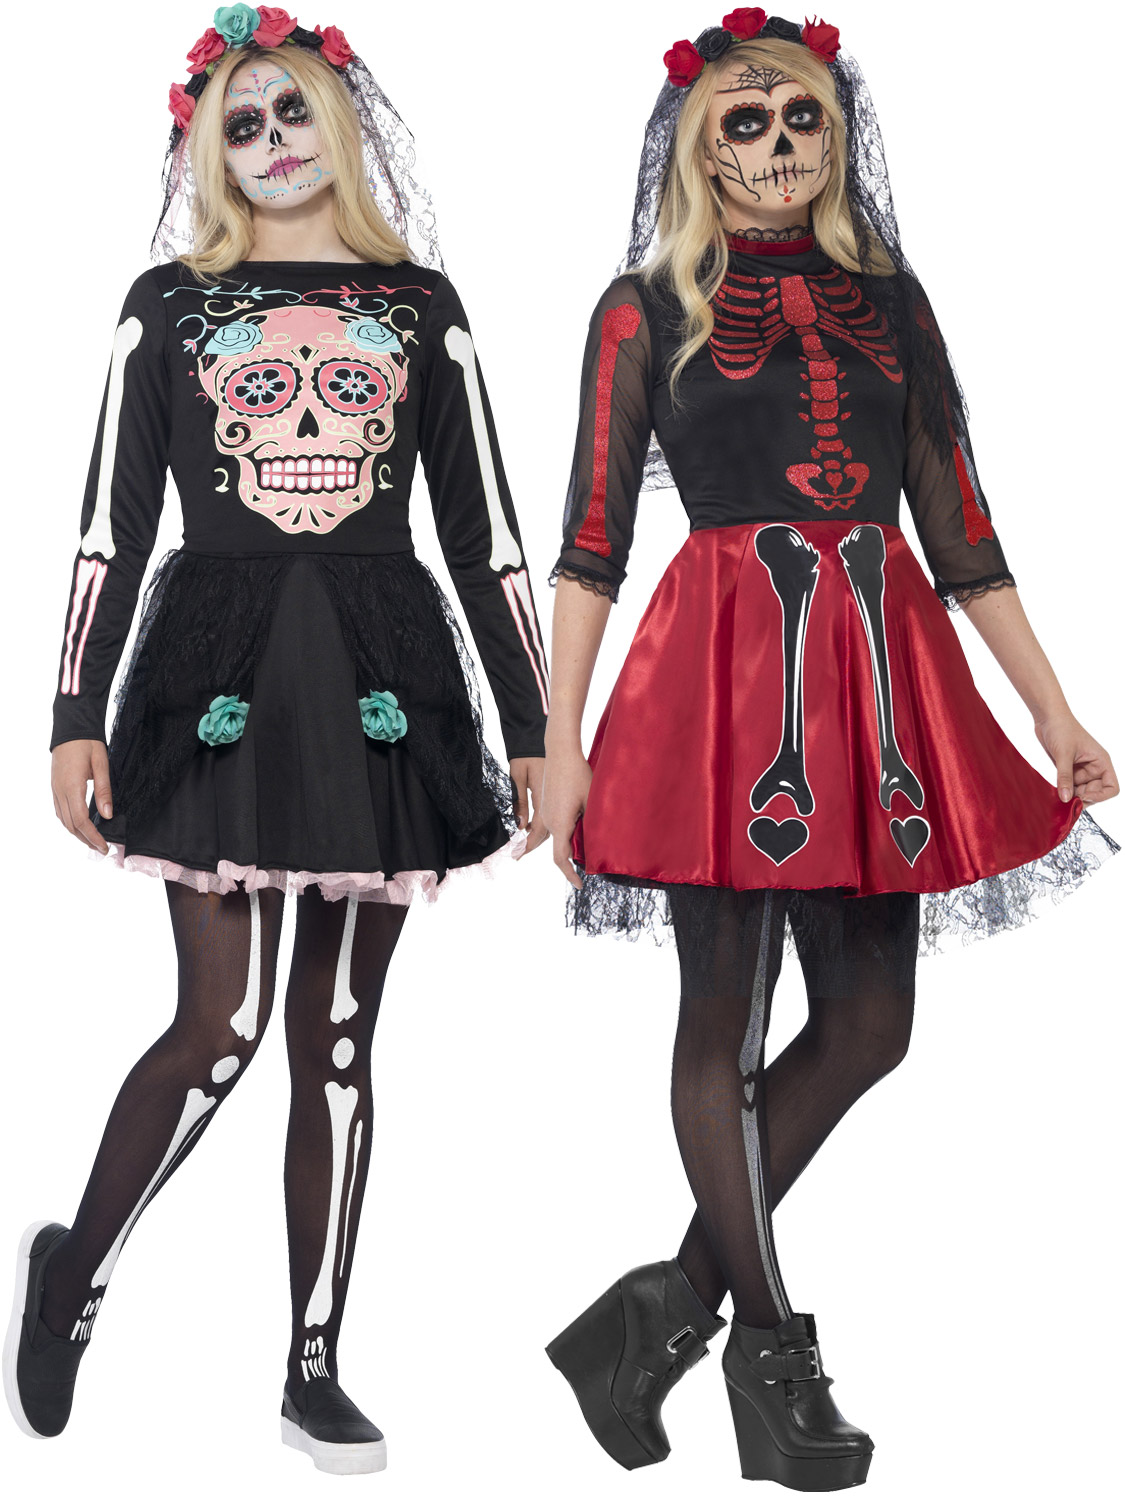 Teen day of the dead diva costume mexicaine halloween fancy dress outfit neuf